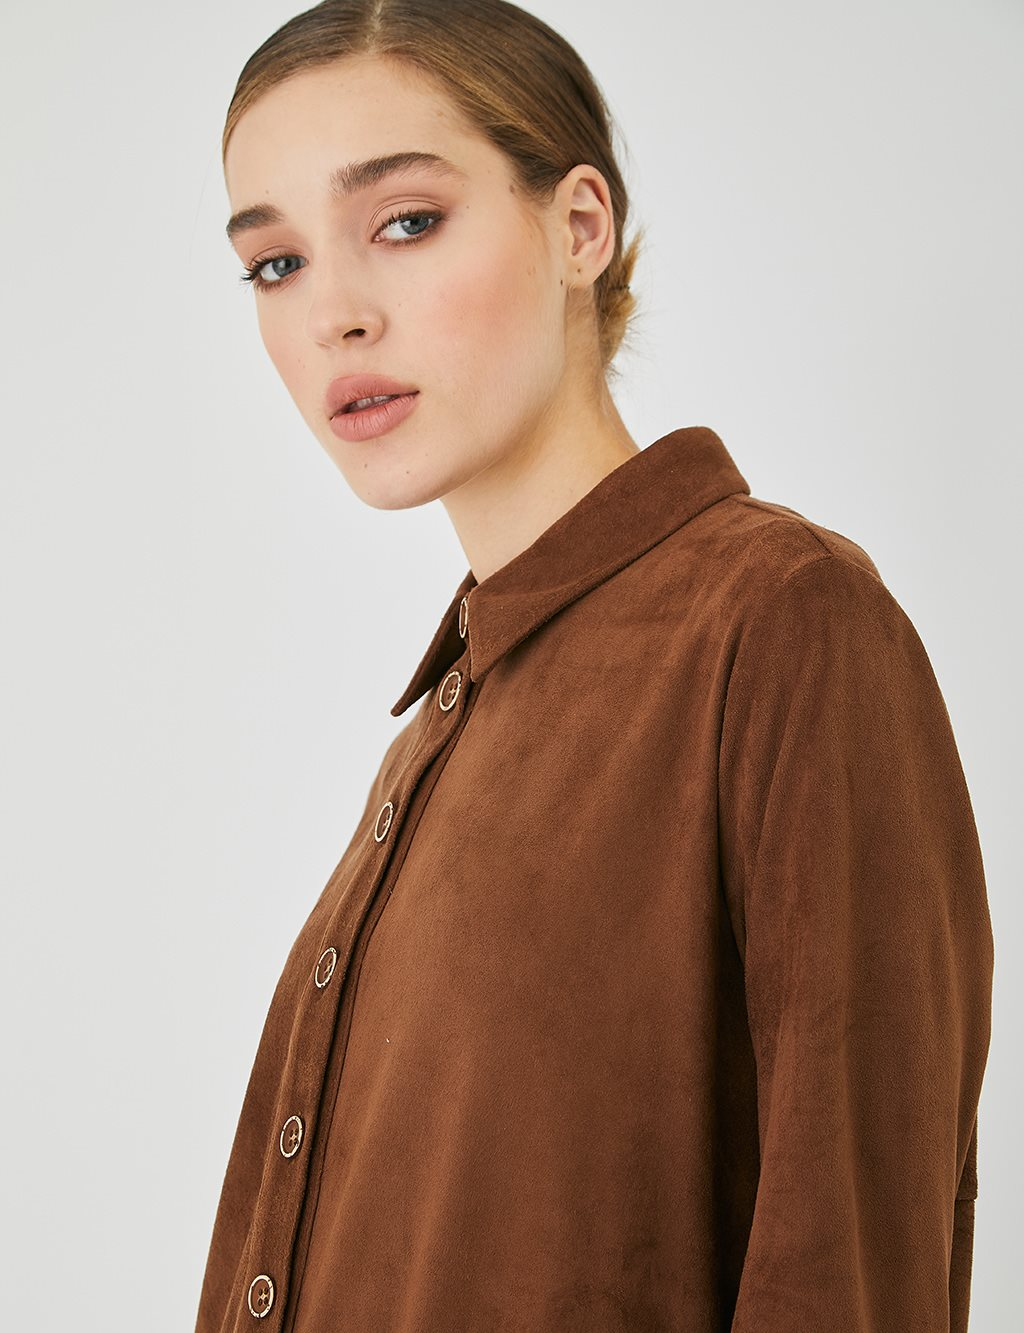 Asymmetric Cut Suede Tunic A20 21016 Tobacco